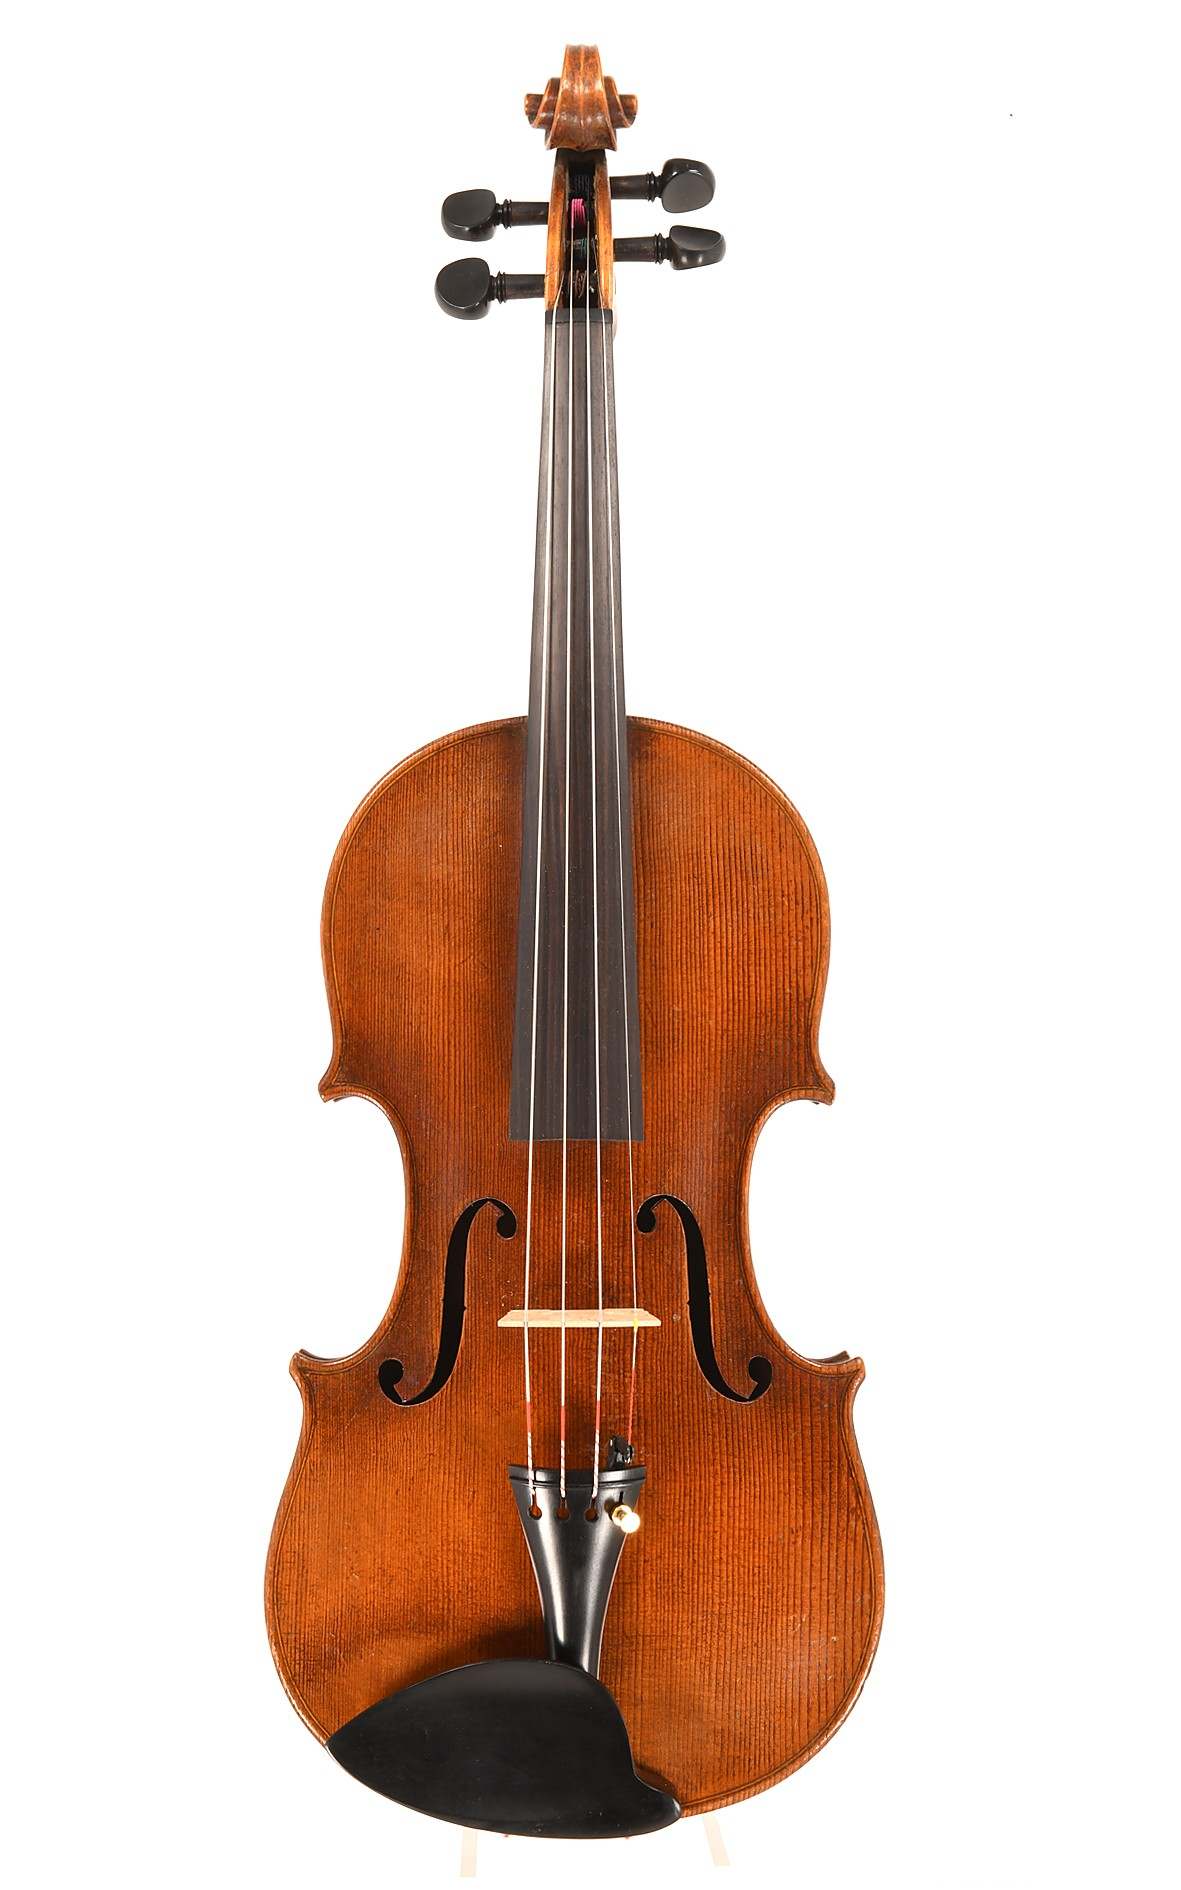 Antique violin from Saxony